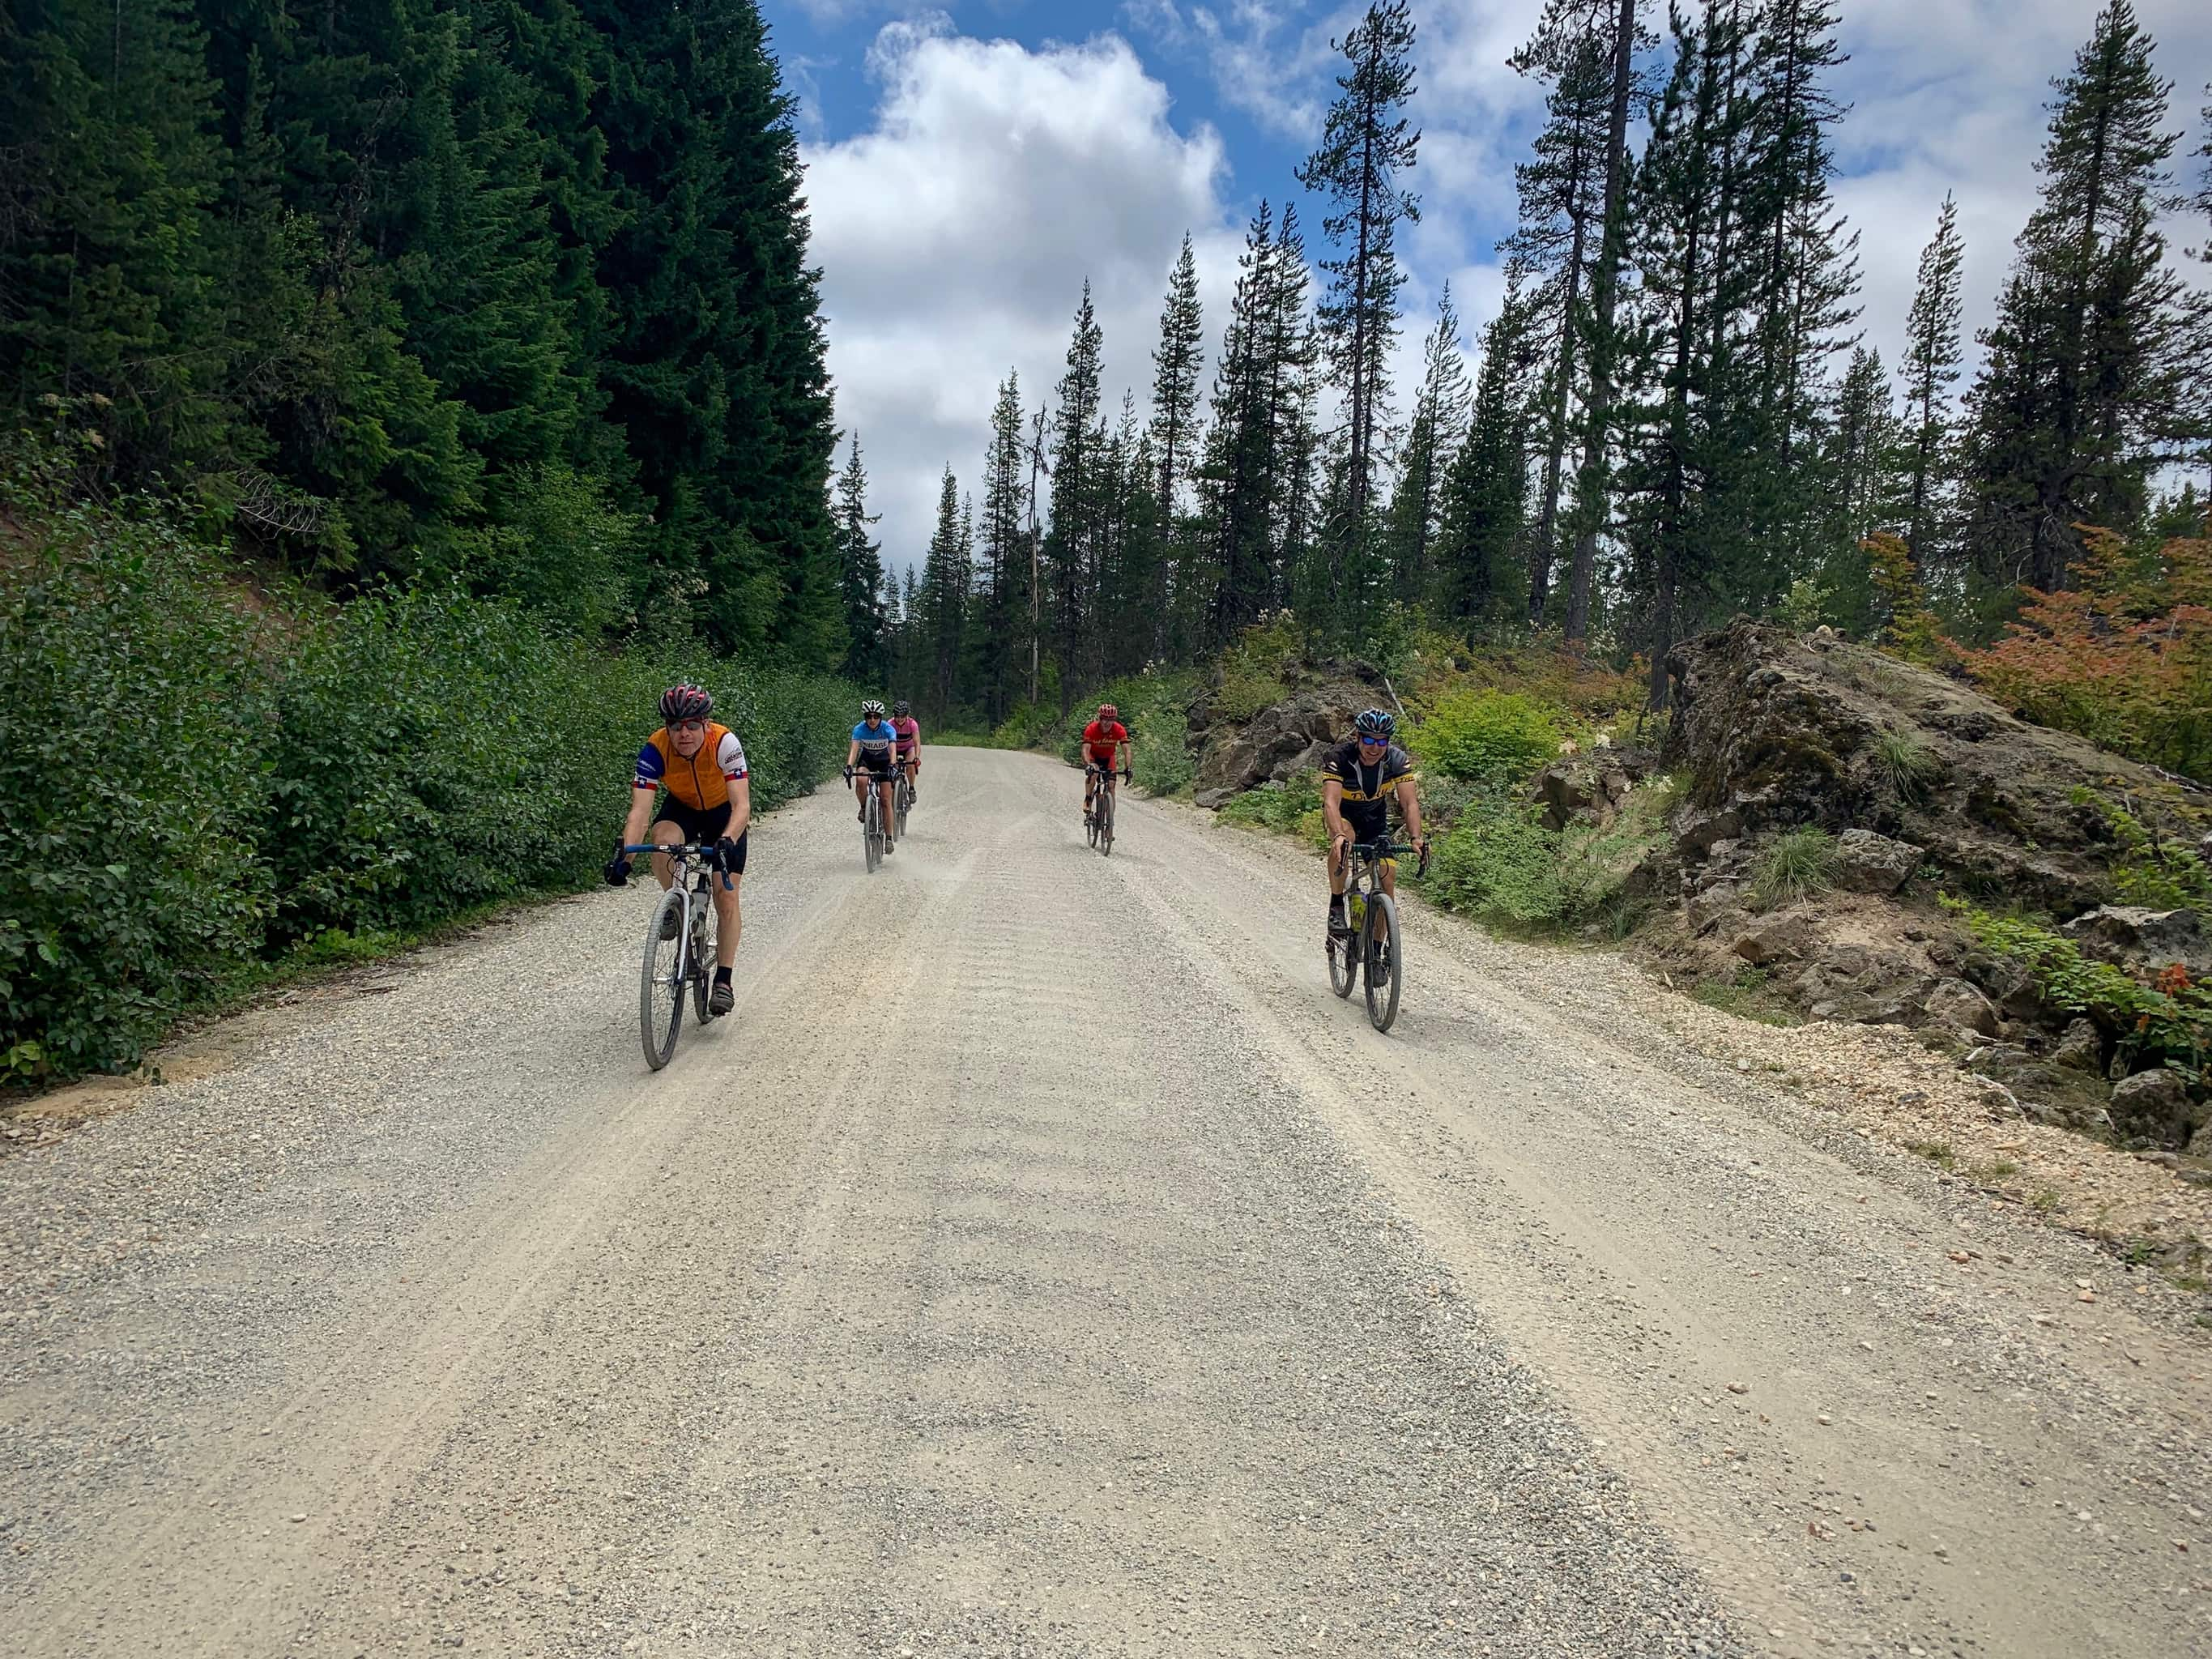 Cyclists on gravel road approaching South Prairie and the disappearing lake in the Gifford Pinchot National Forest.